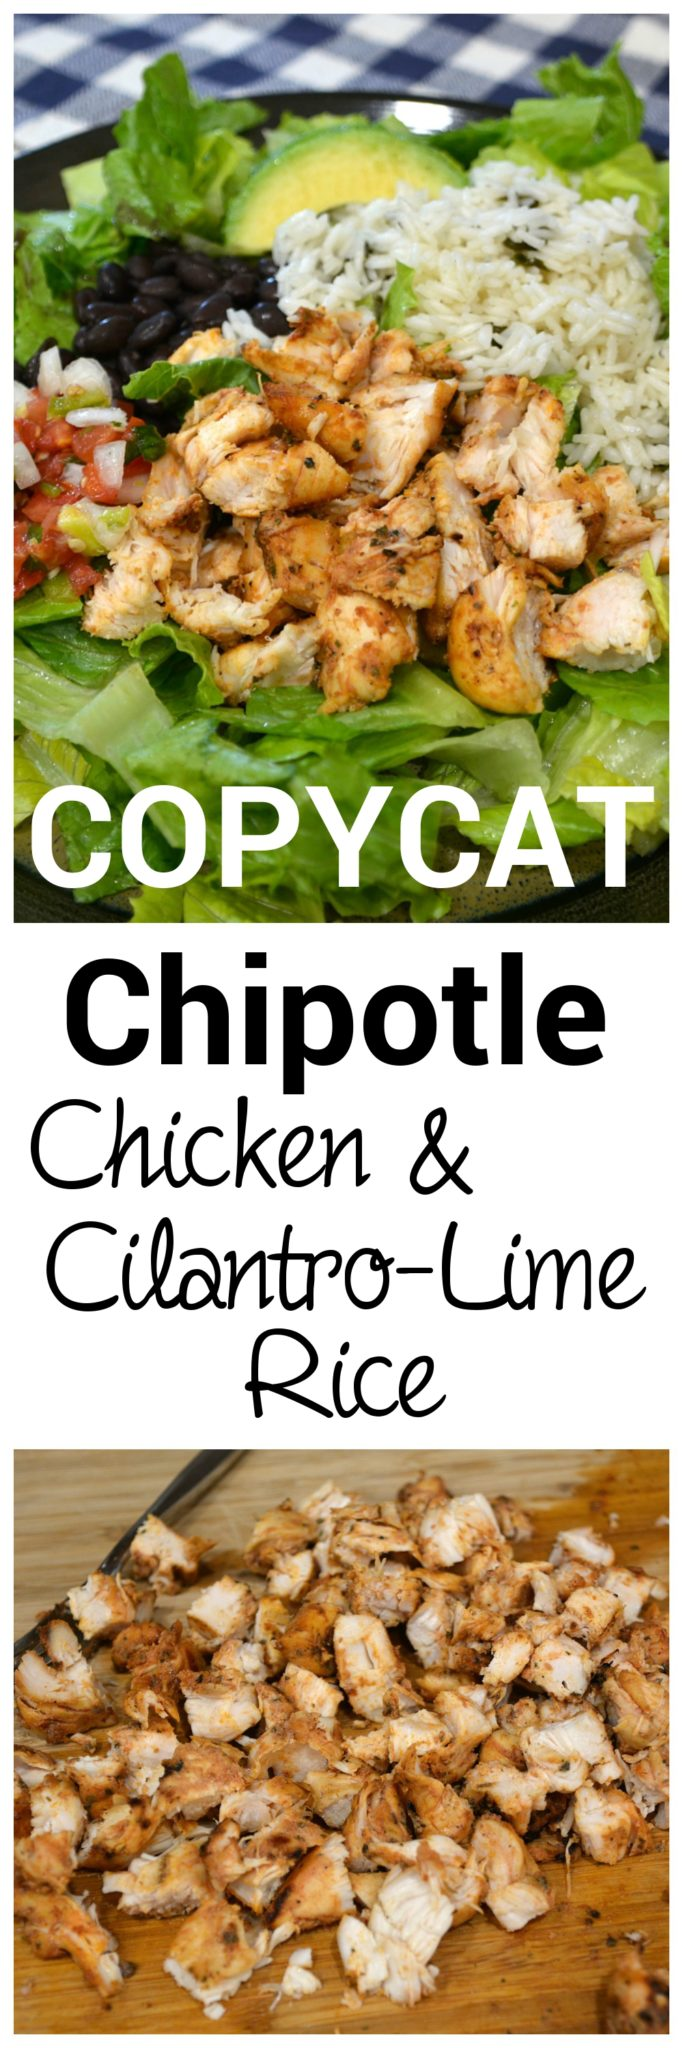 This is the absolute best recipe to use if you want to make a salad bowl exactly like Chipotle.